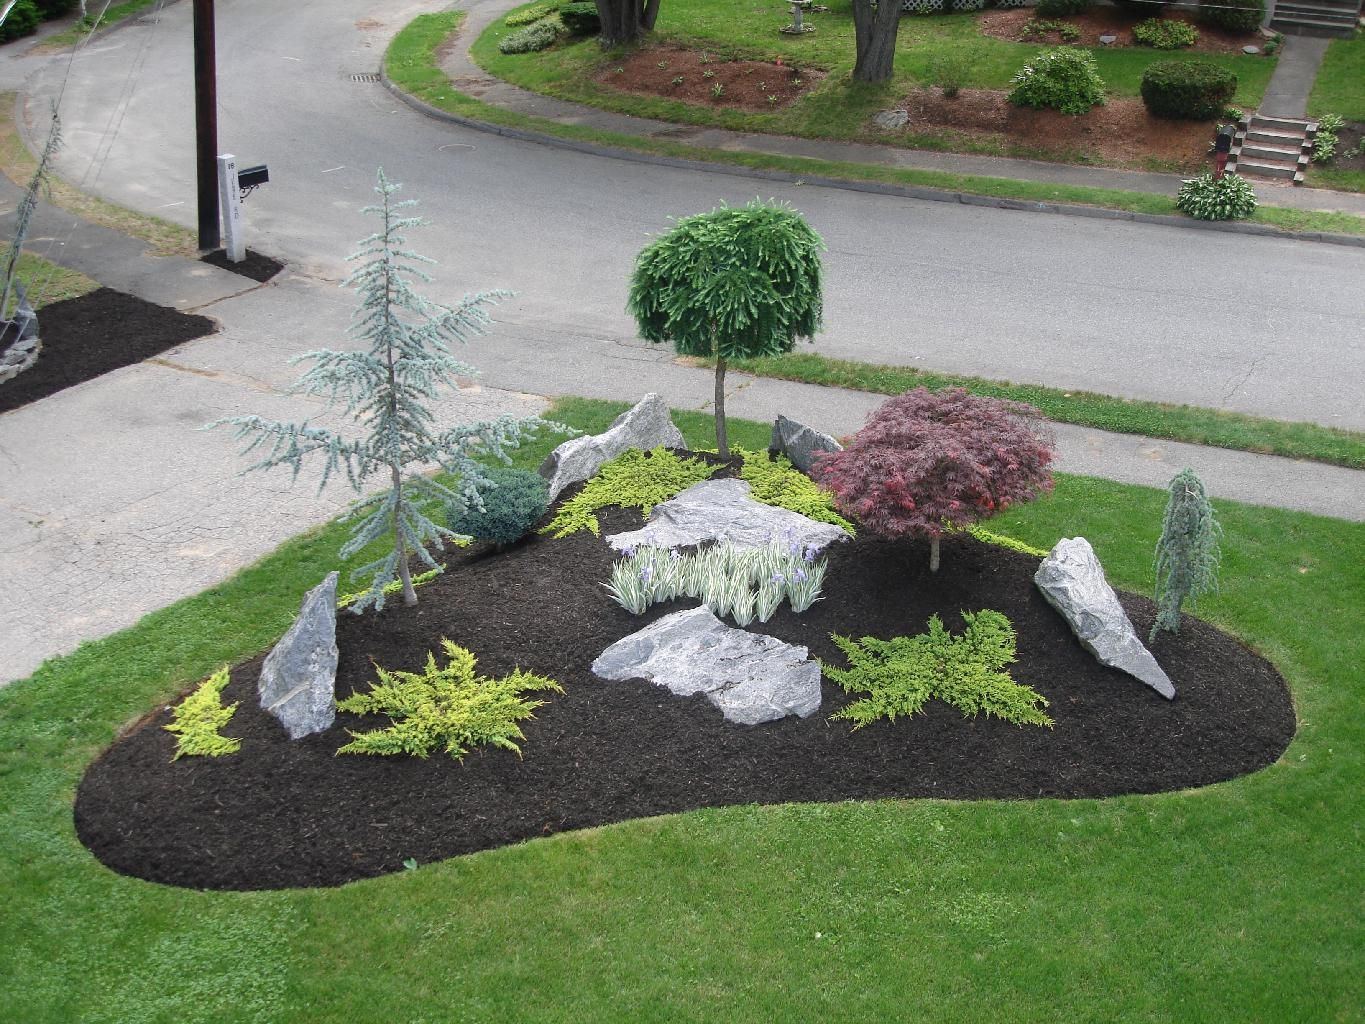 Superior Simple Landscape Designs With Rock Beds   This Is Similar To What I Would  Like In The Corner Of My Yard.